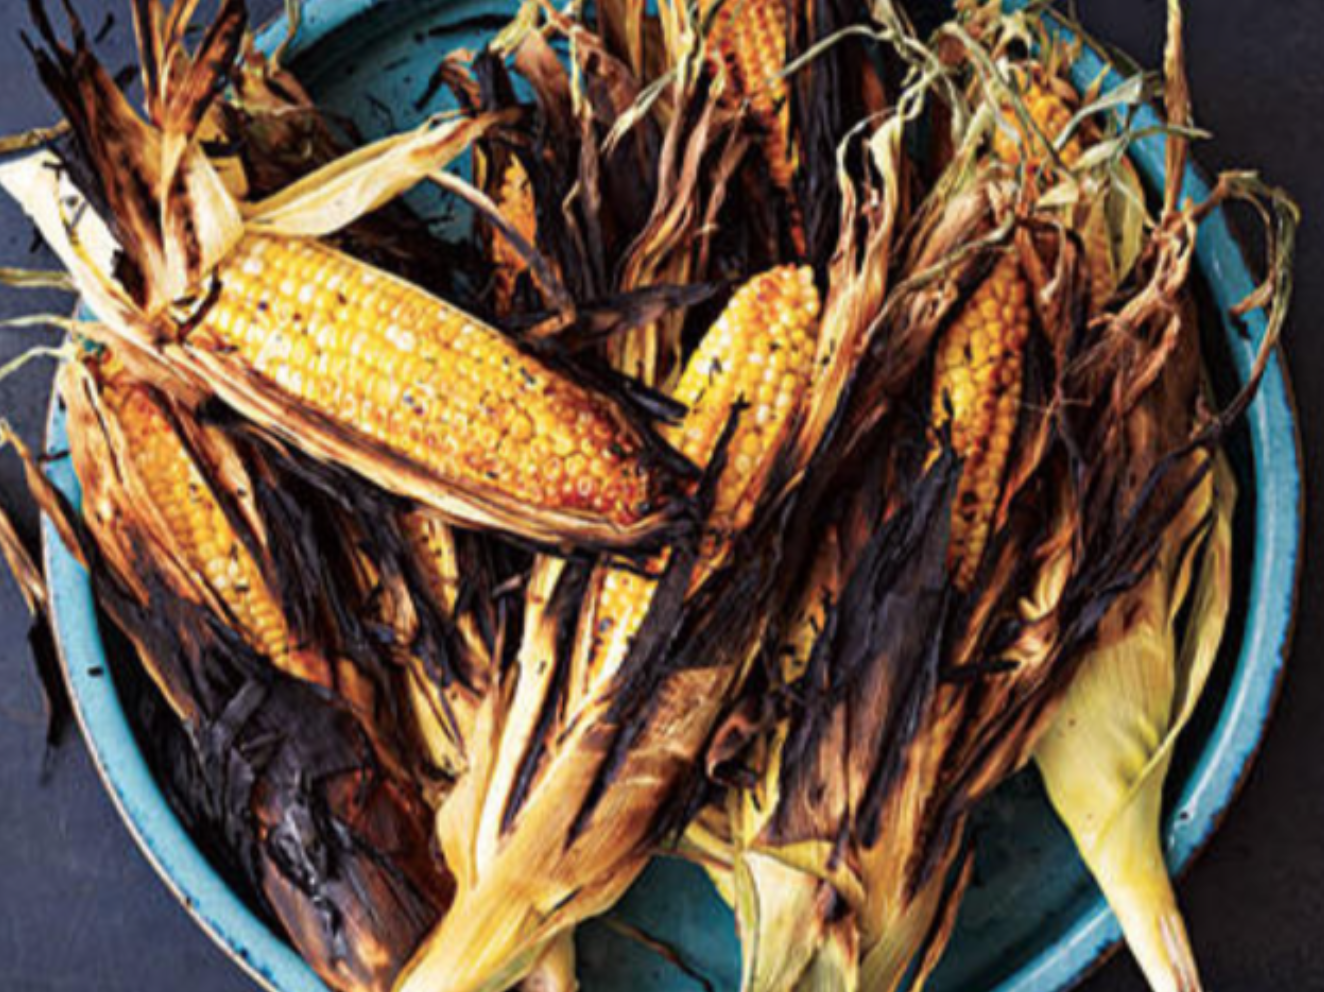 How to prepare fresh corn on the cob on grill